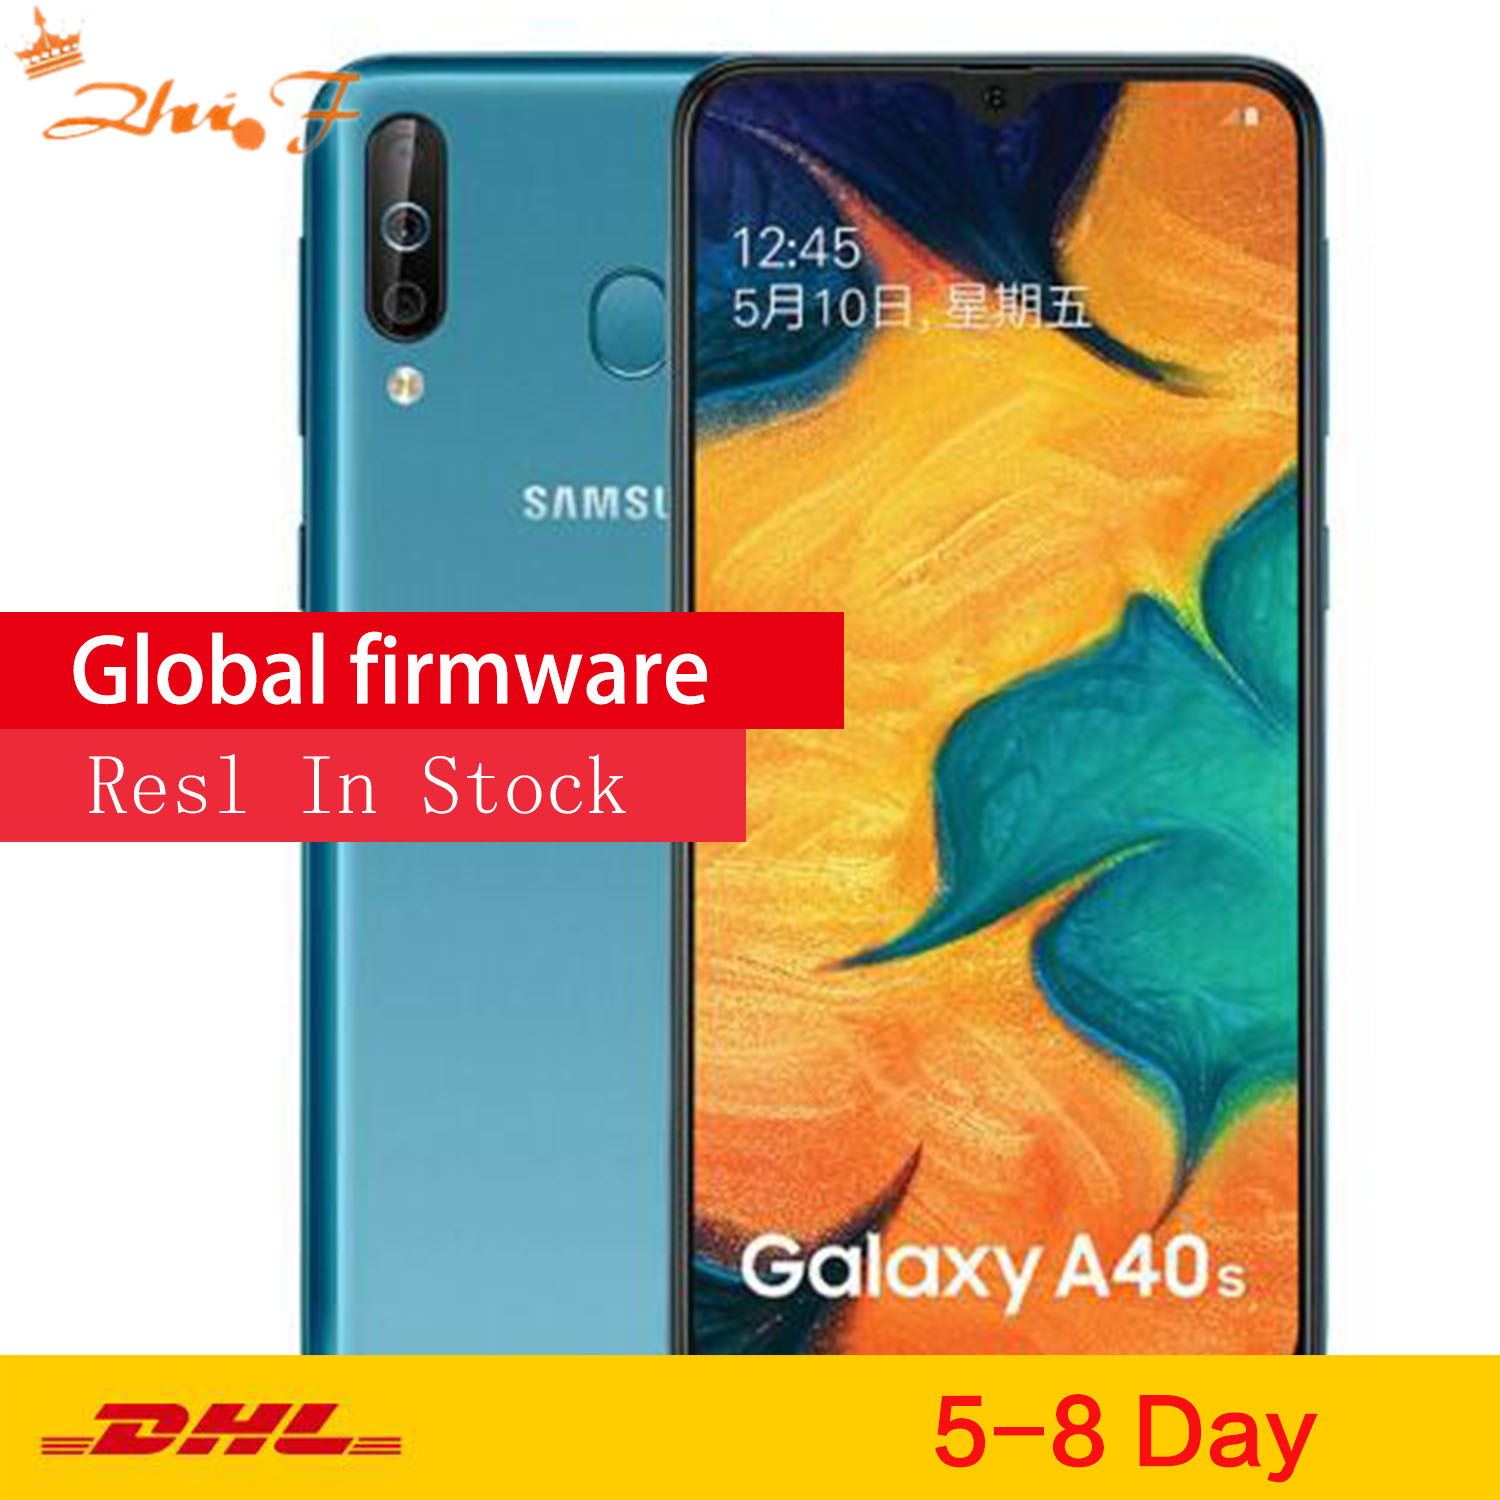 Samsung Galaxy A40s 4G LTE Android Smartphone 6.4 Inch Octa Core 6GB 64GB 5000mAh Super-fast charging Face unlock Mobile phone image